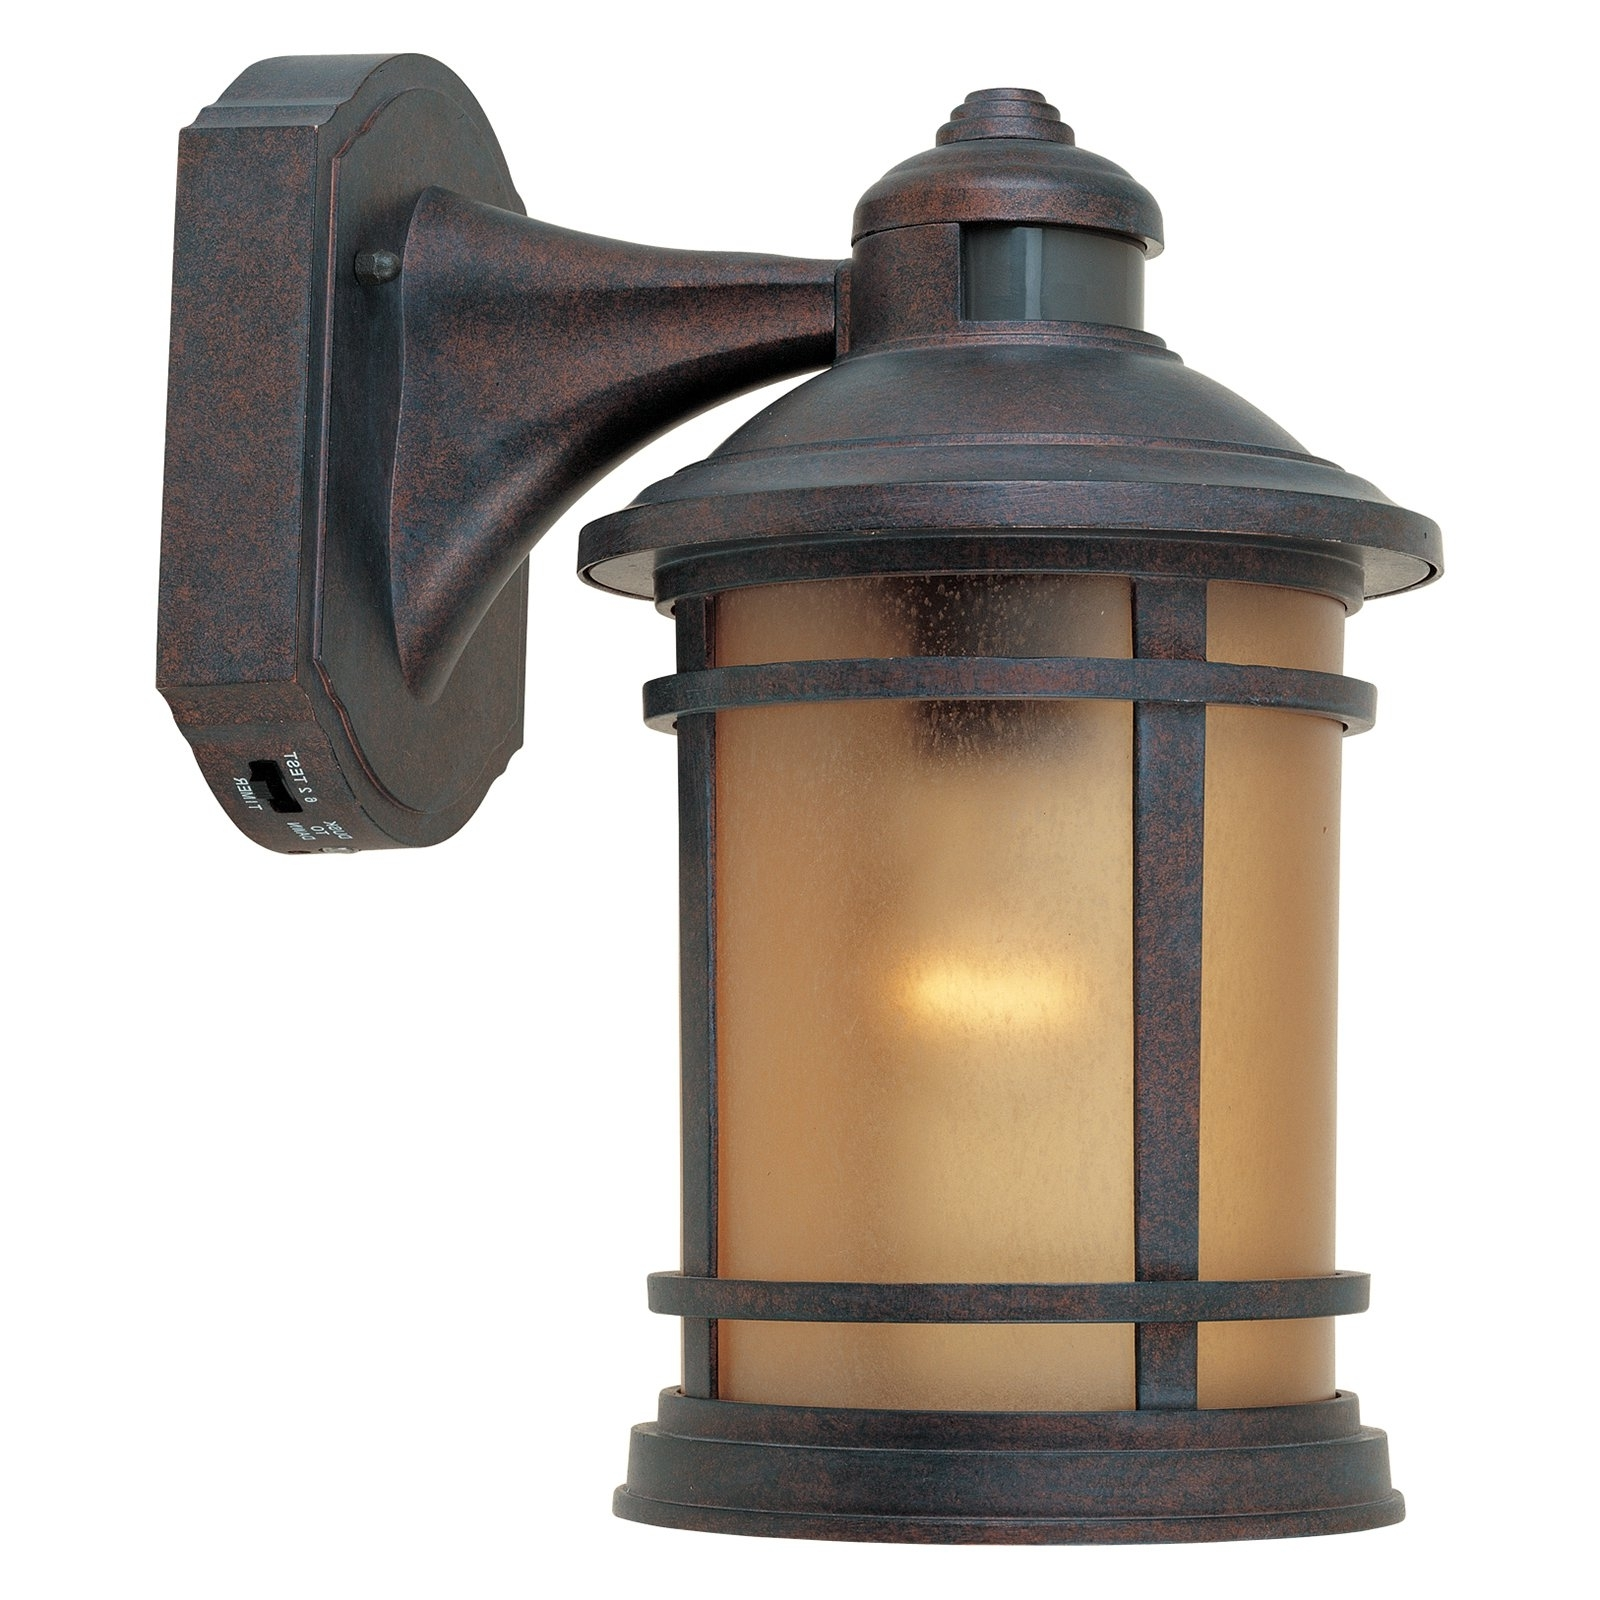 Astonishing Motion Sensor Outdoor Wall Light – Motion Sensor Porch Within Well Known Big Outdoor Wall Lighting (View 16 of 20)